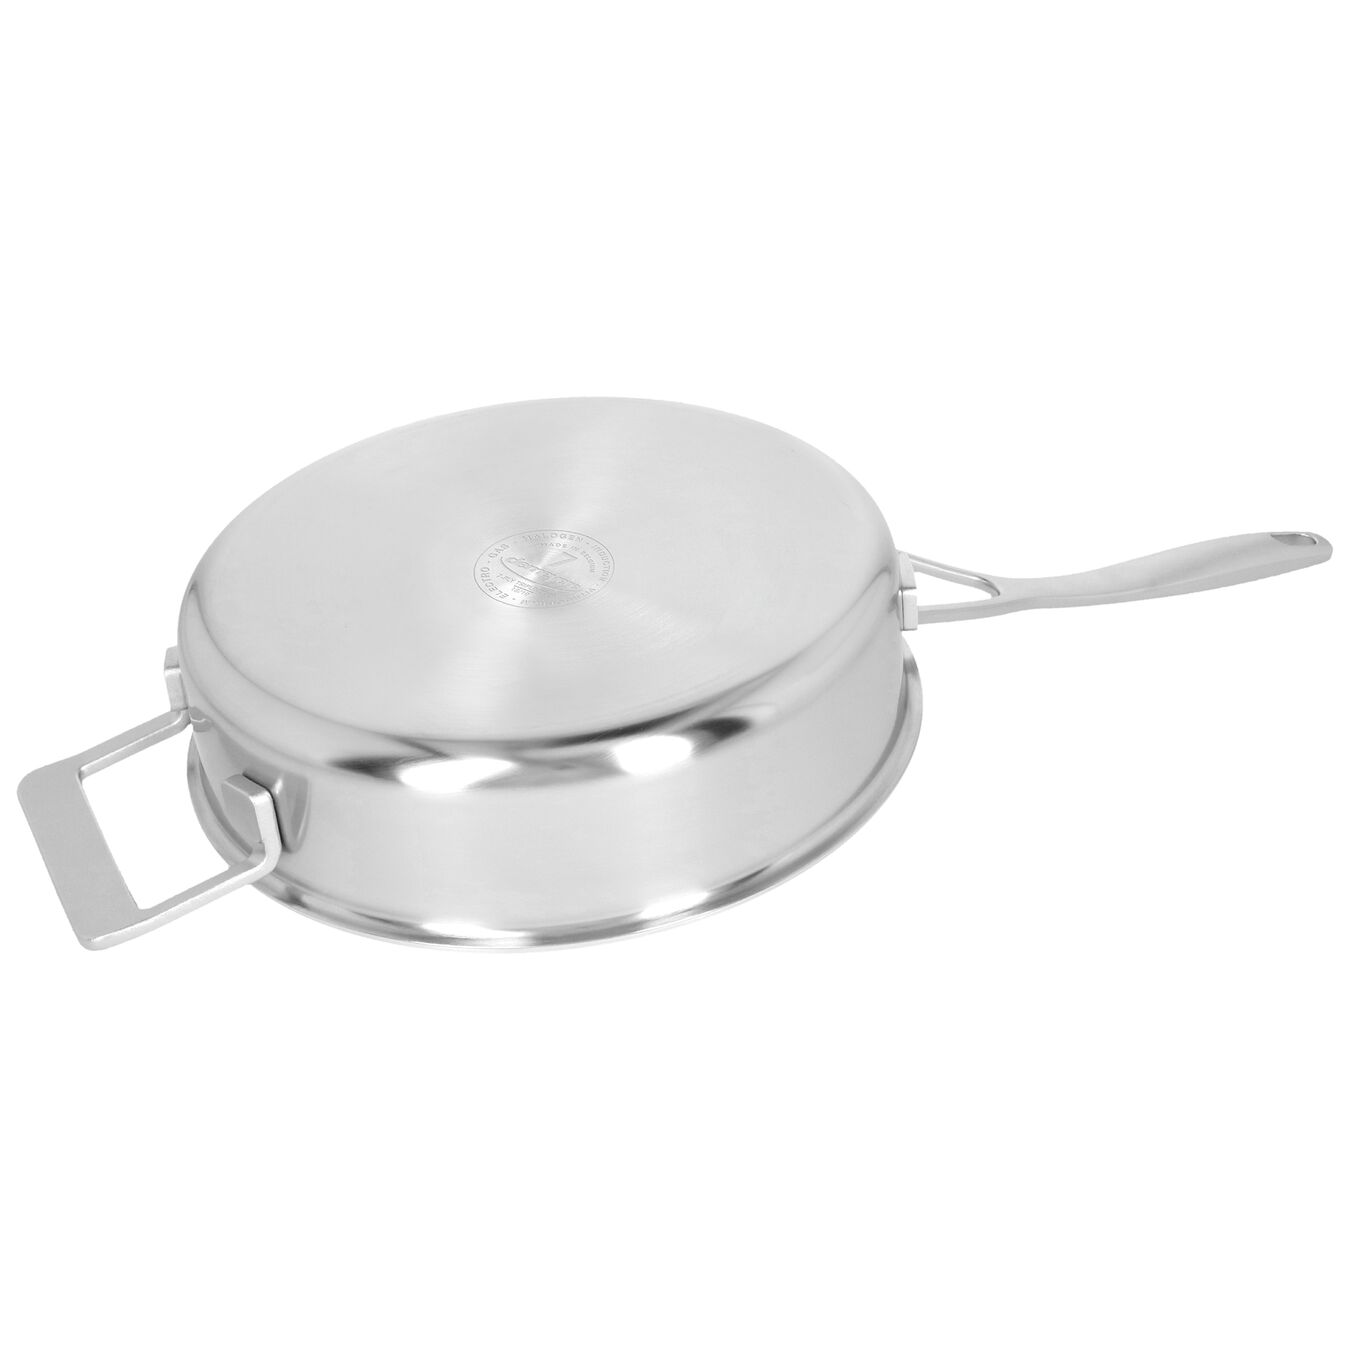 9.5-inch Saute pan with lid, 18/10 Stainless Steel ,,large 4